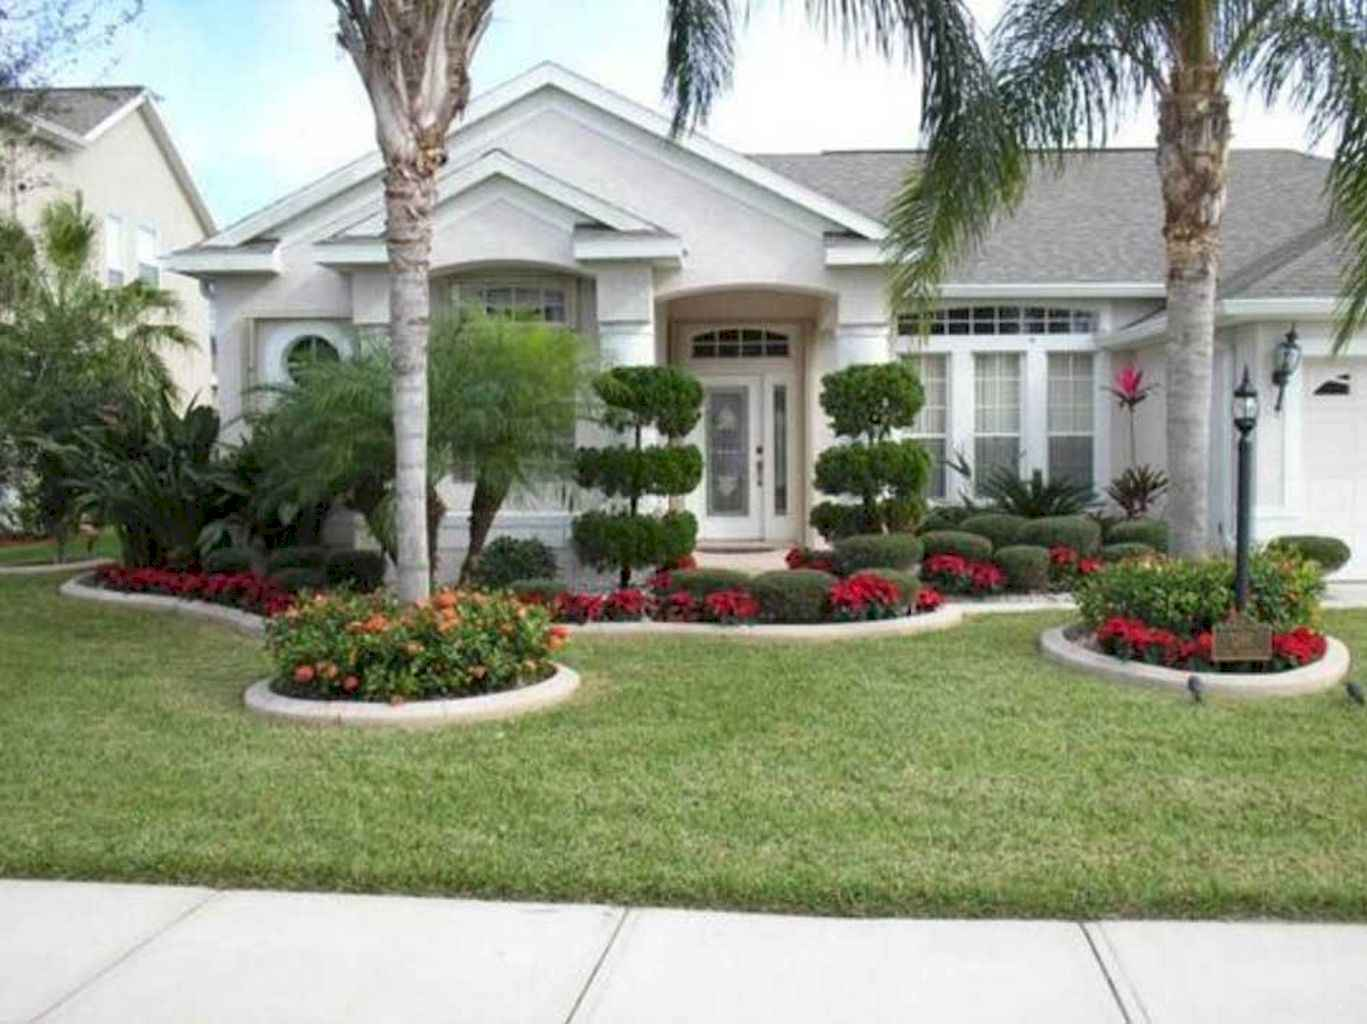 35 Beautiful Frontyard Landscaping Design Ideas and Remodel (29)